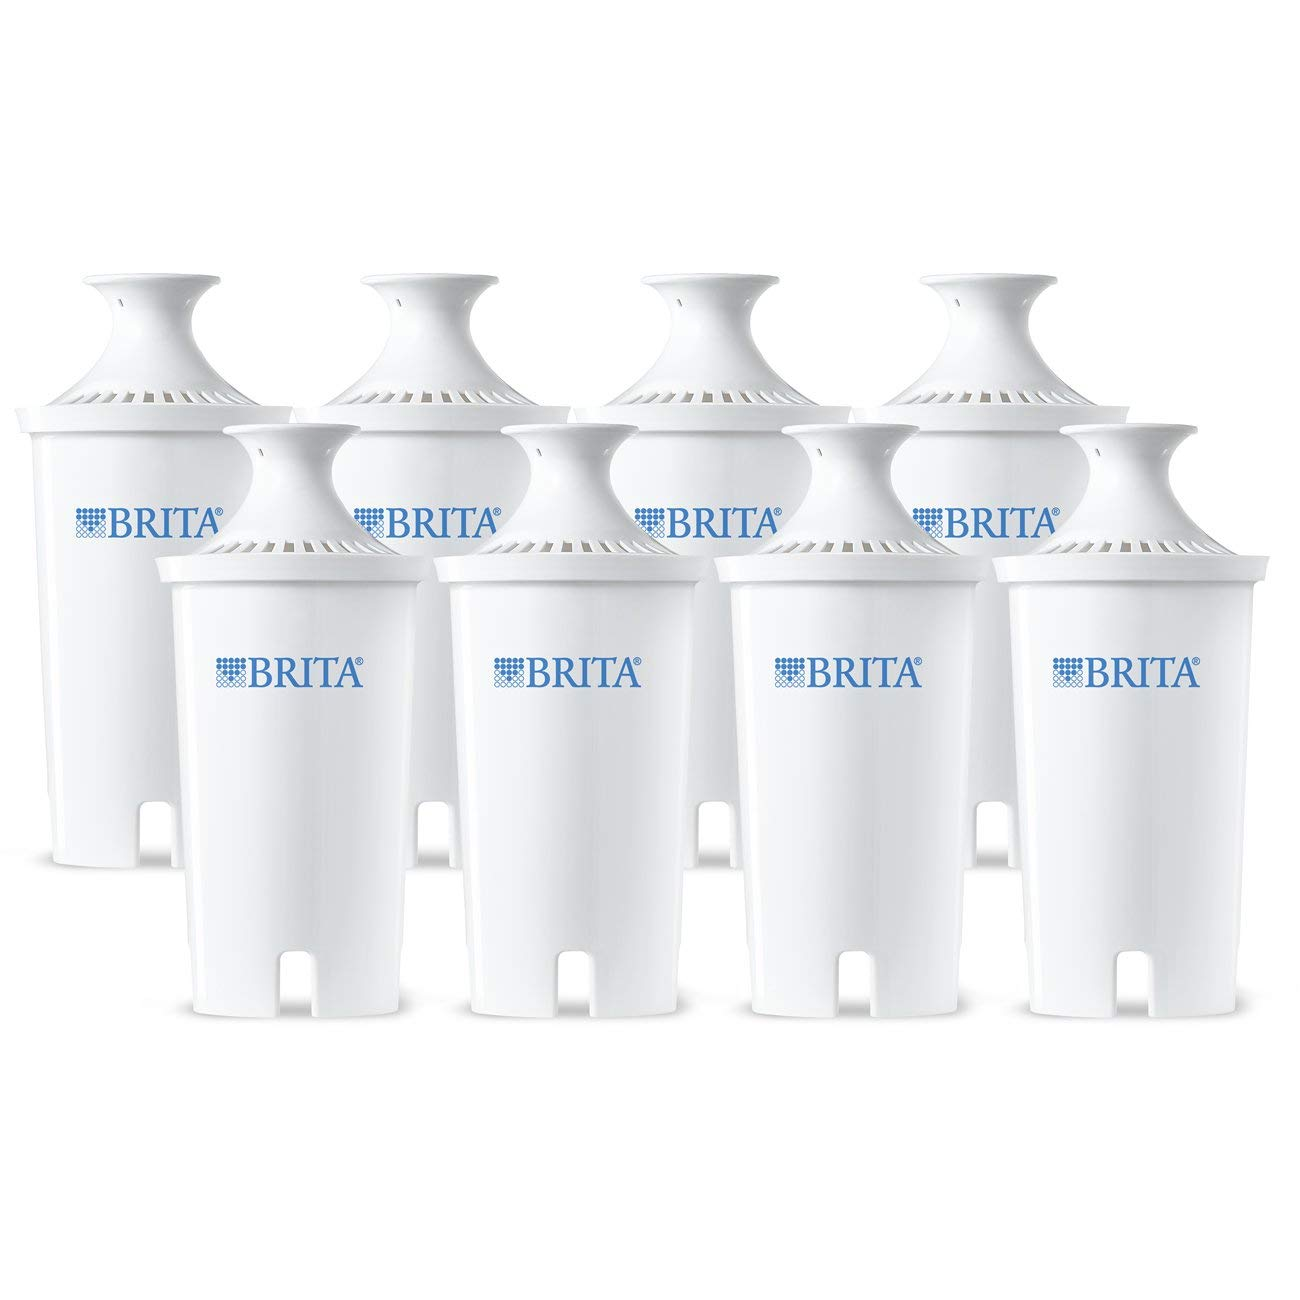 Brita Standard Water Filter, Standard Replacement Filters for Pitchers and Dispensers, BPA Free - 8 Count